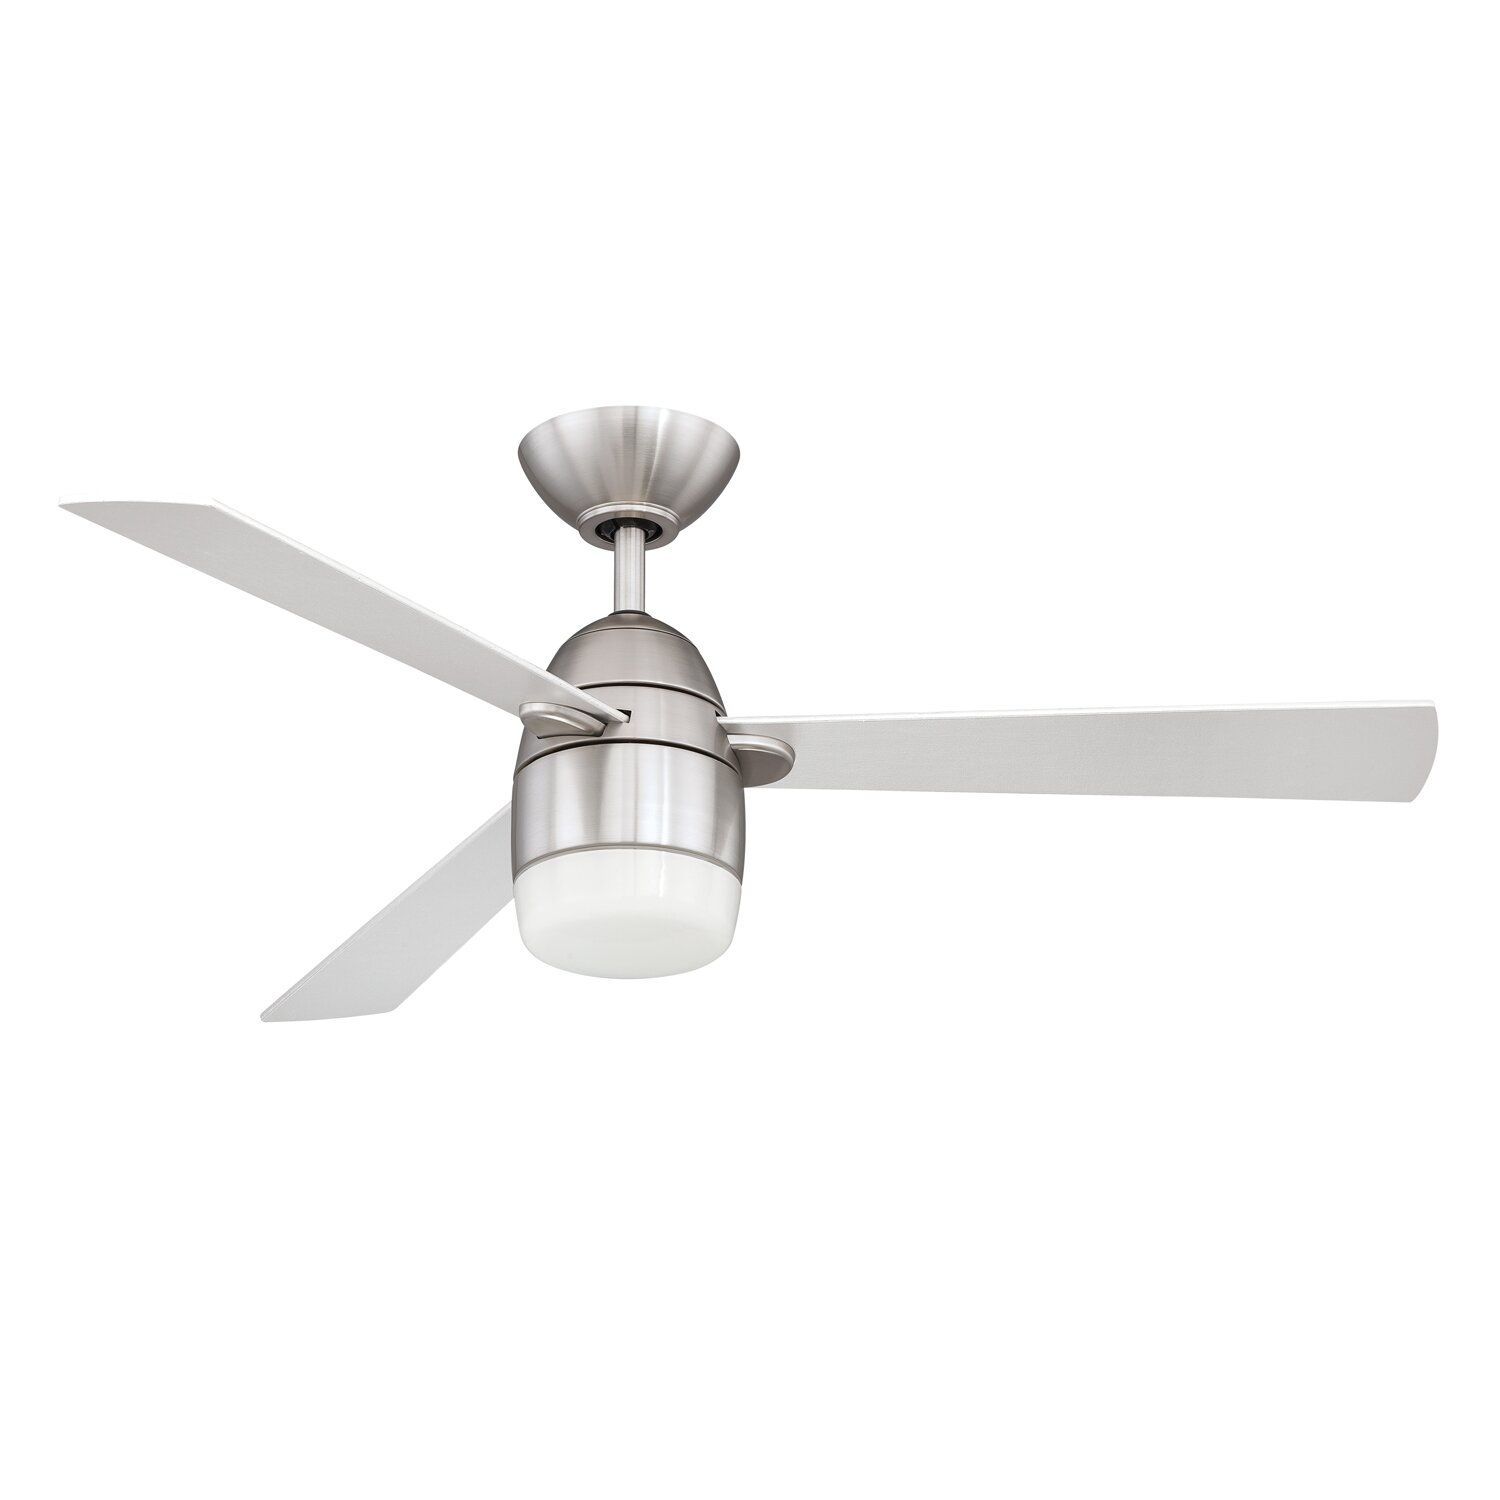 kendal lighting 42 antron 3 blade ceiling fan with remote reviews wayfair. Black Bedroom Furniture Sets. Home Design Ideas